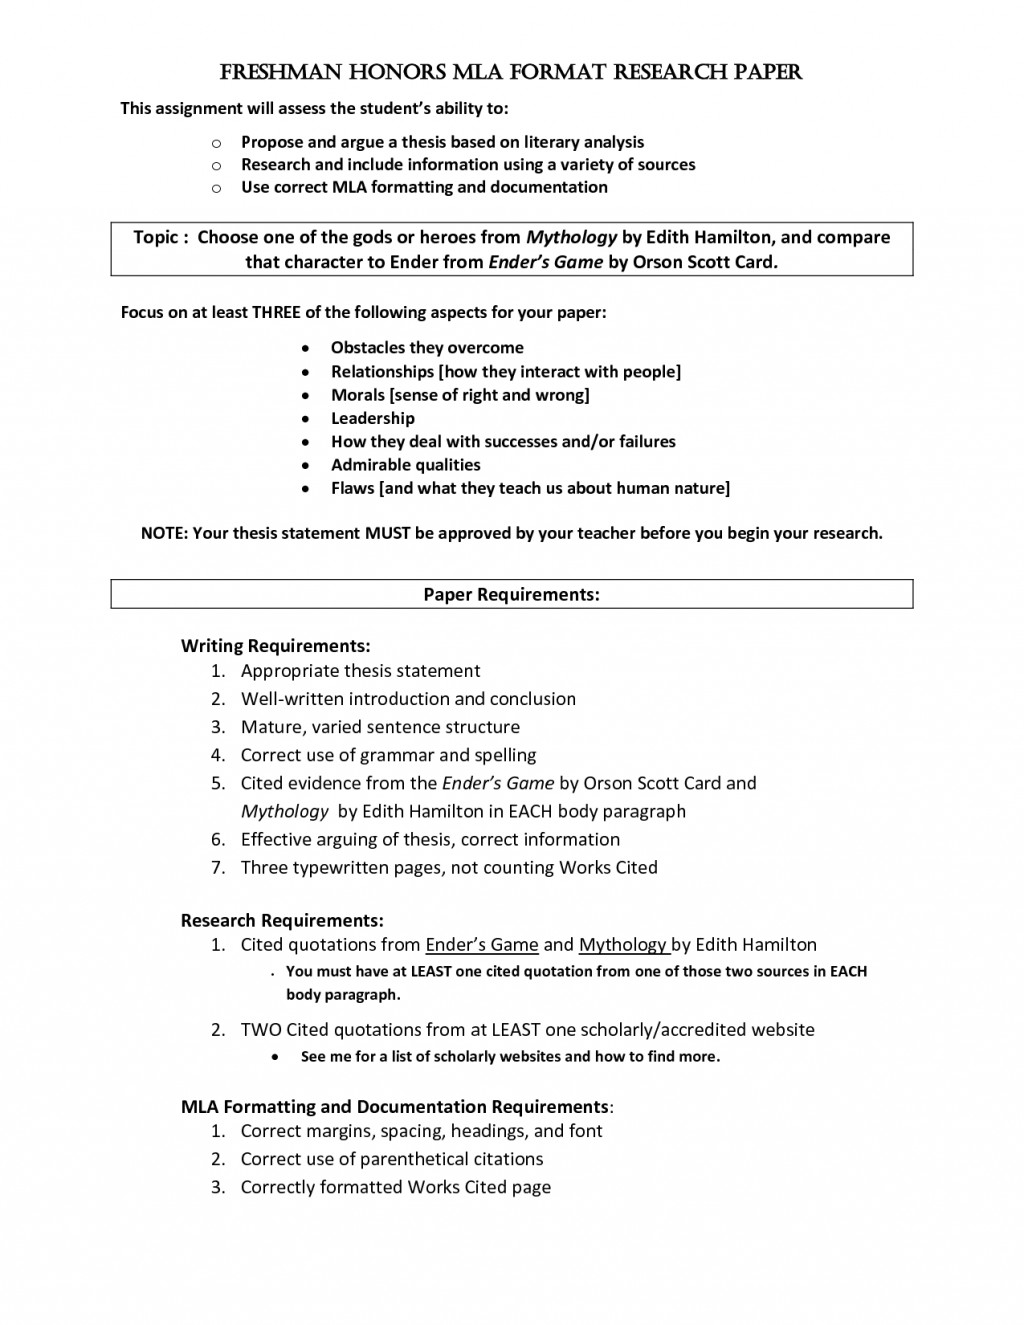 017 Mla Research Paper Citation Format Bunch Ideas Of Essay Example Beautiful Politicalnce Guidelines Imposing In Text Large